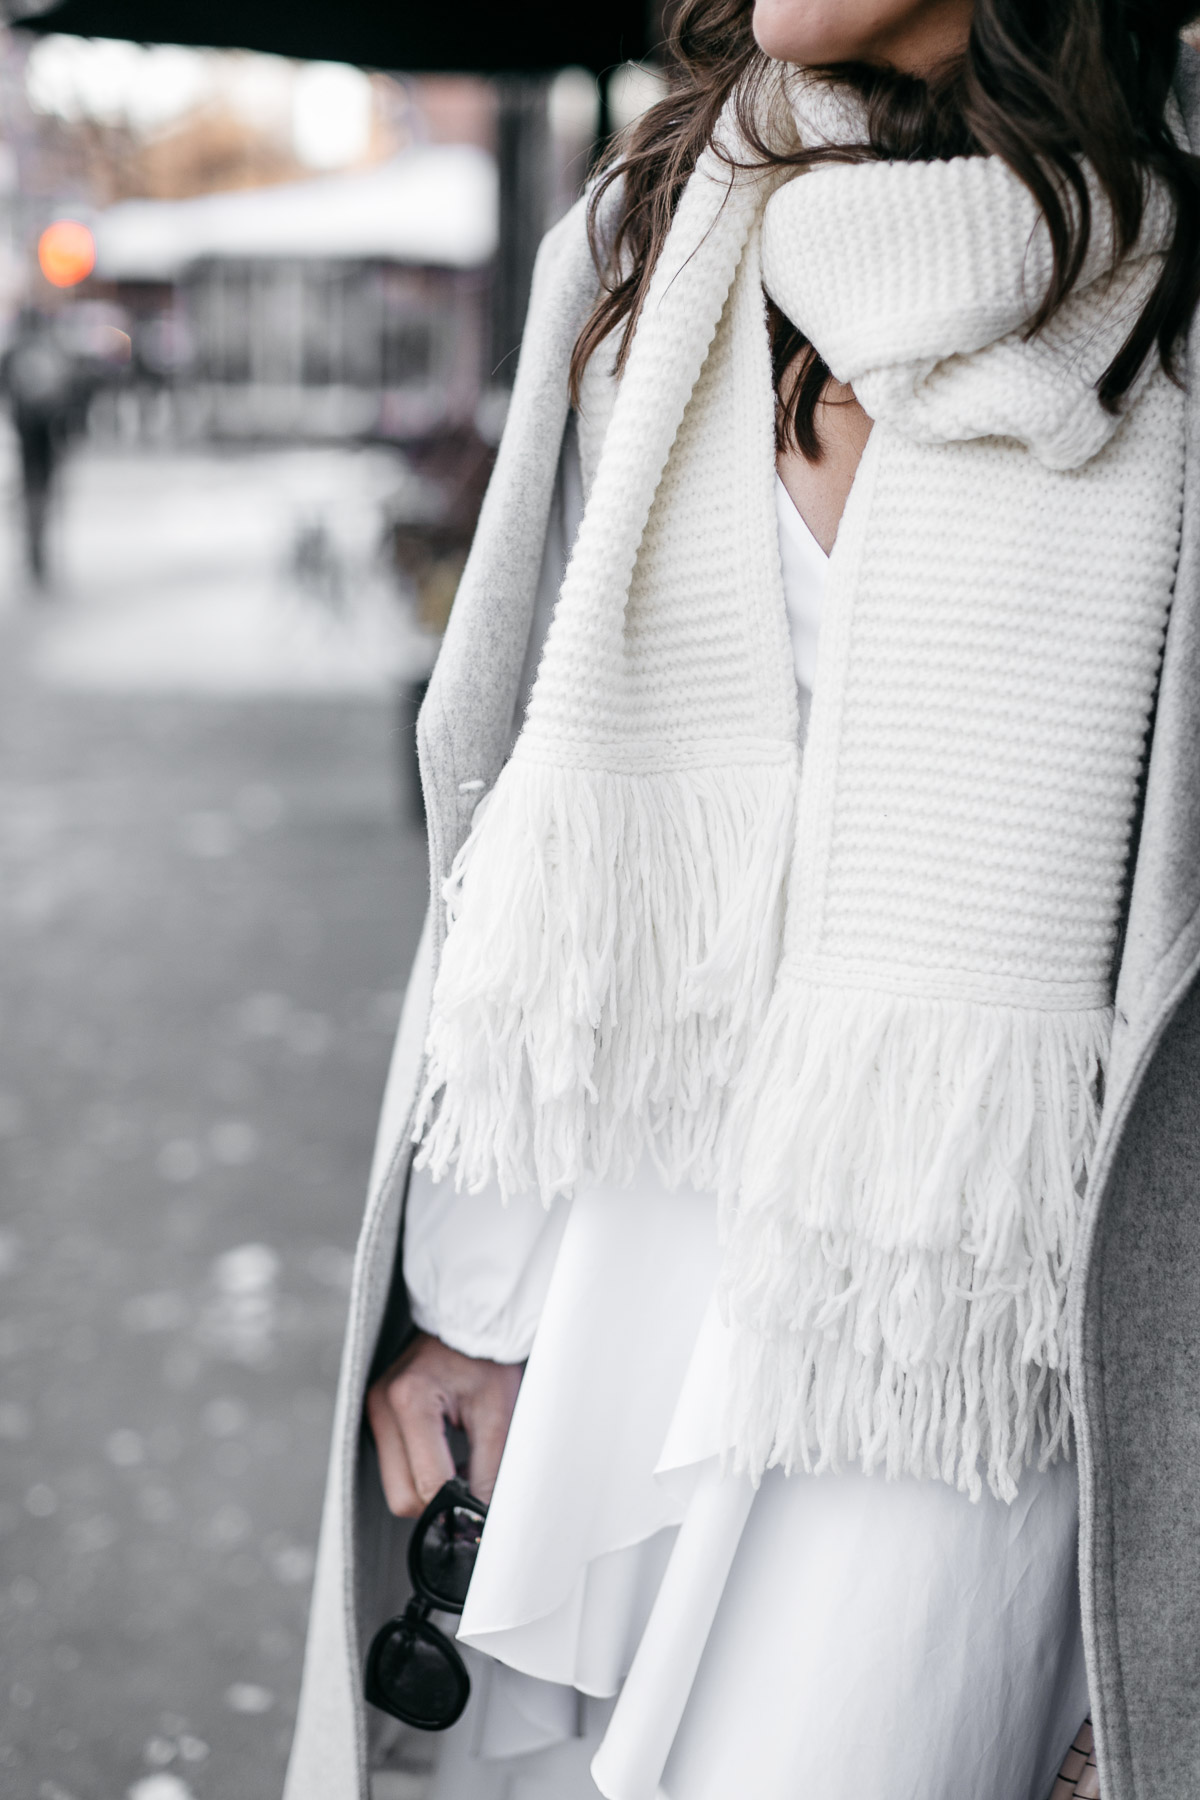 Club Monaco Juki white fringed scarf is styled by Amanda of A Glam Lifestyle blog during NYFW Spring 2017